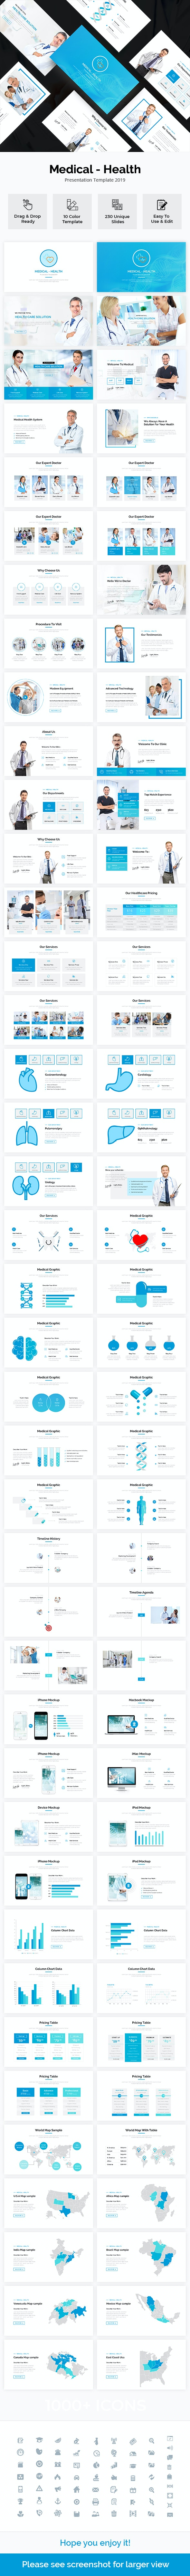 Medical-Health Google Slides Template 2019 - Google Slides Presentation Templates